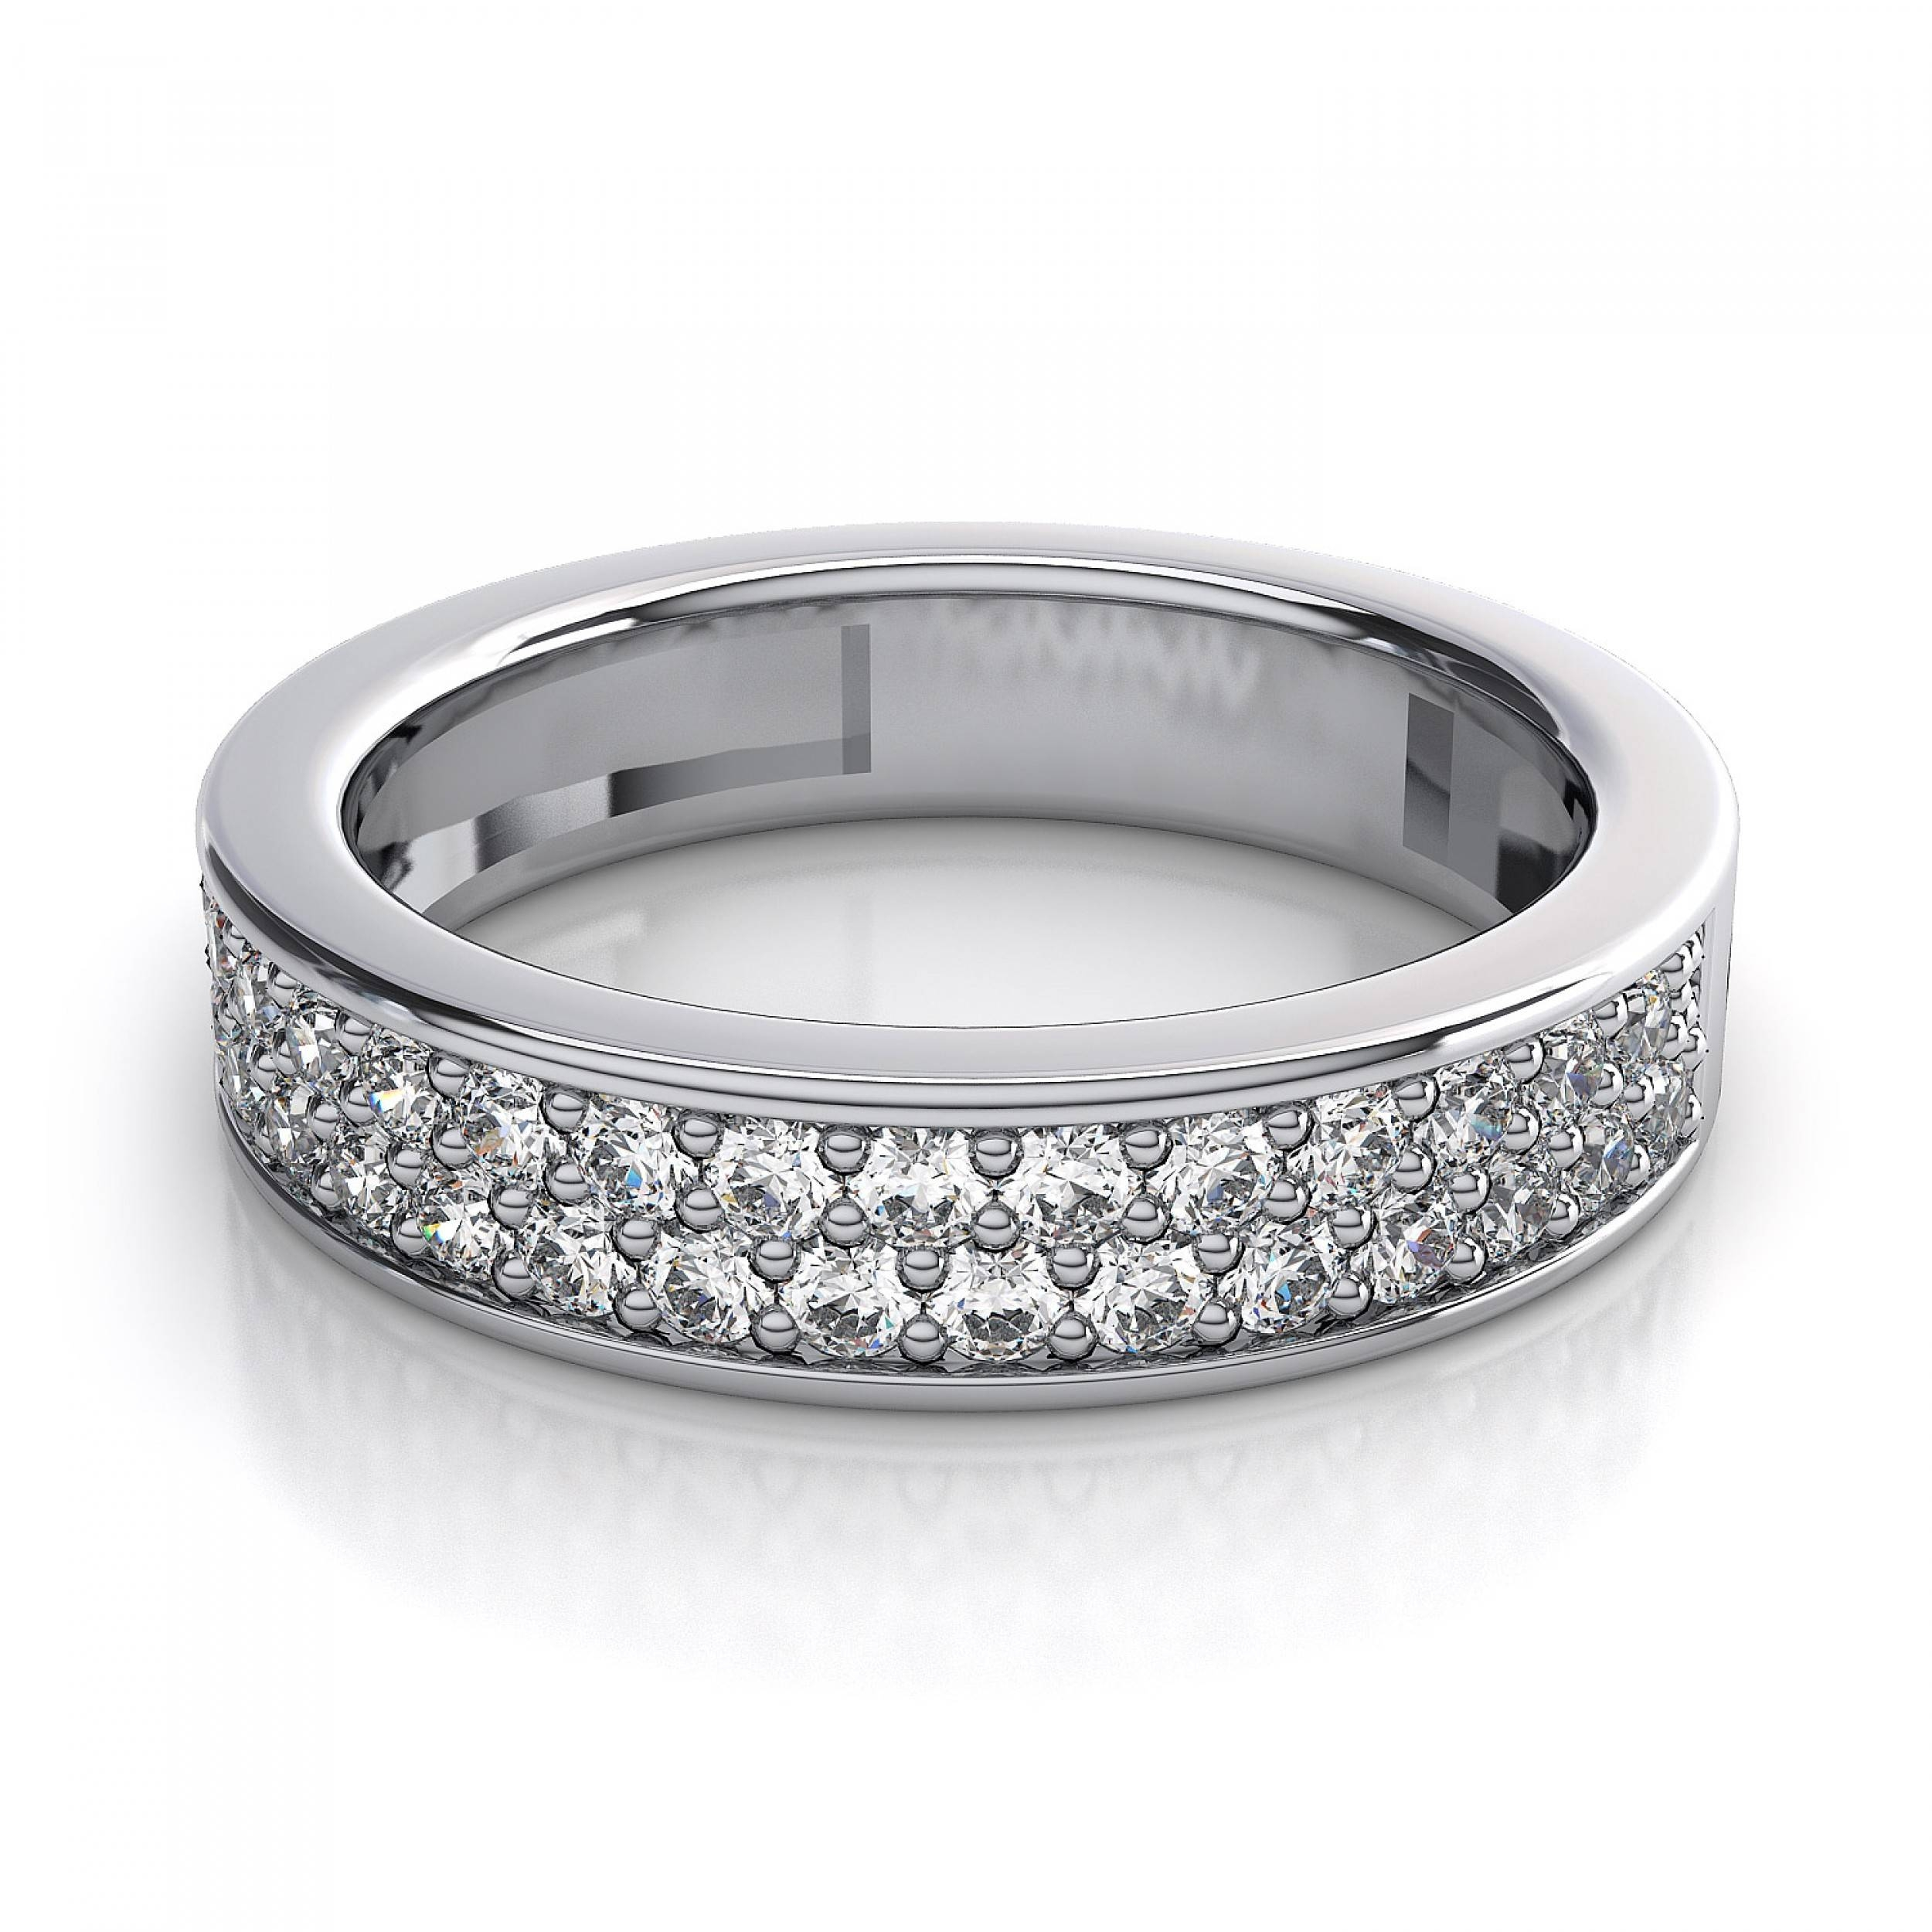 65 Carat Women's Rings Pave Diamond Wedding Ring In Platinum Within Pave Diamond Wedding Rings (View 5 of 15)